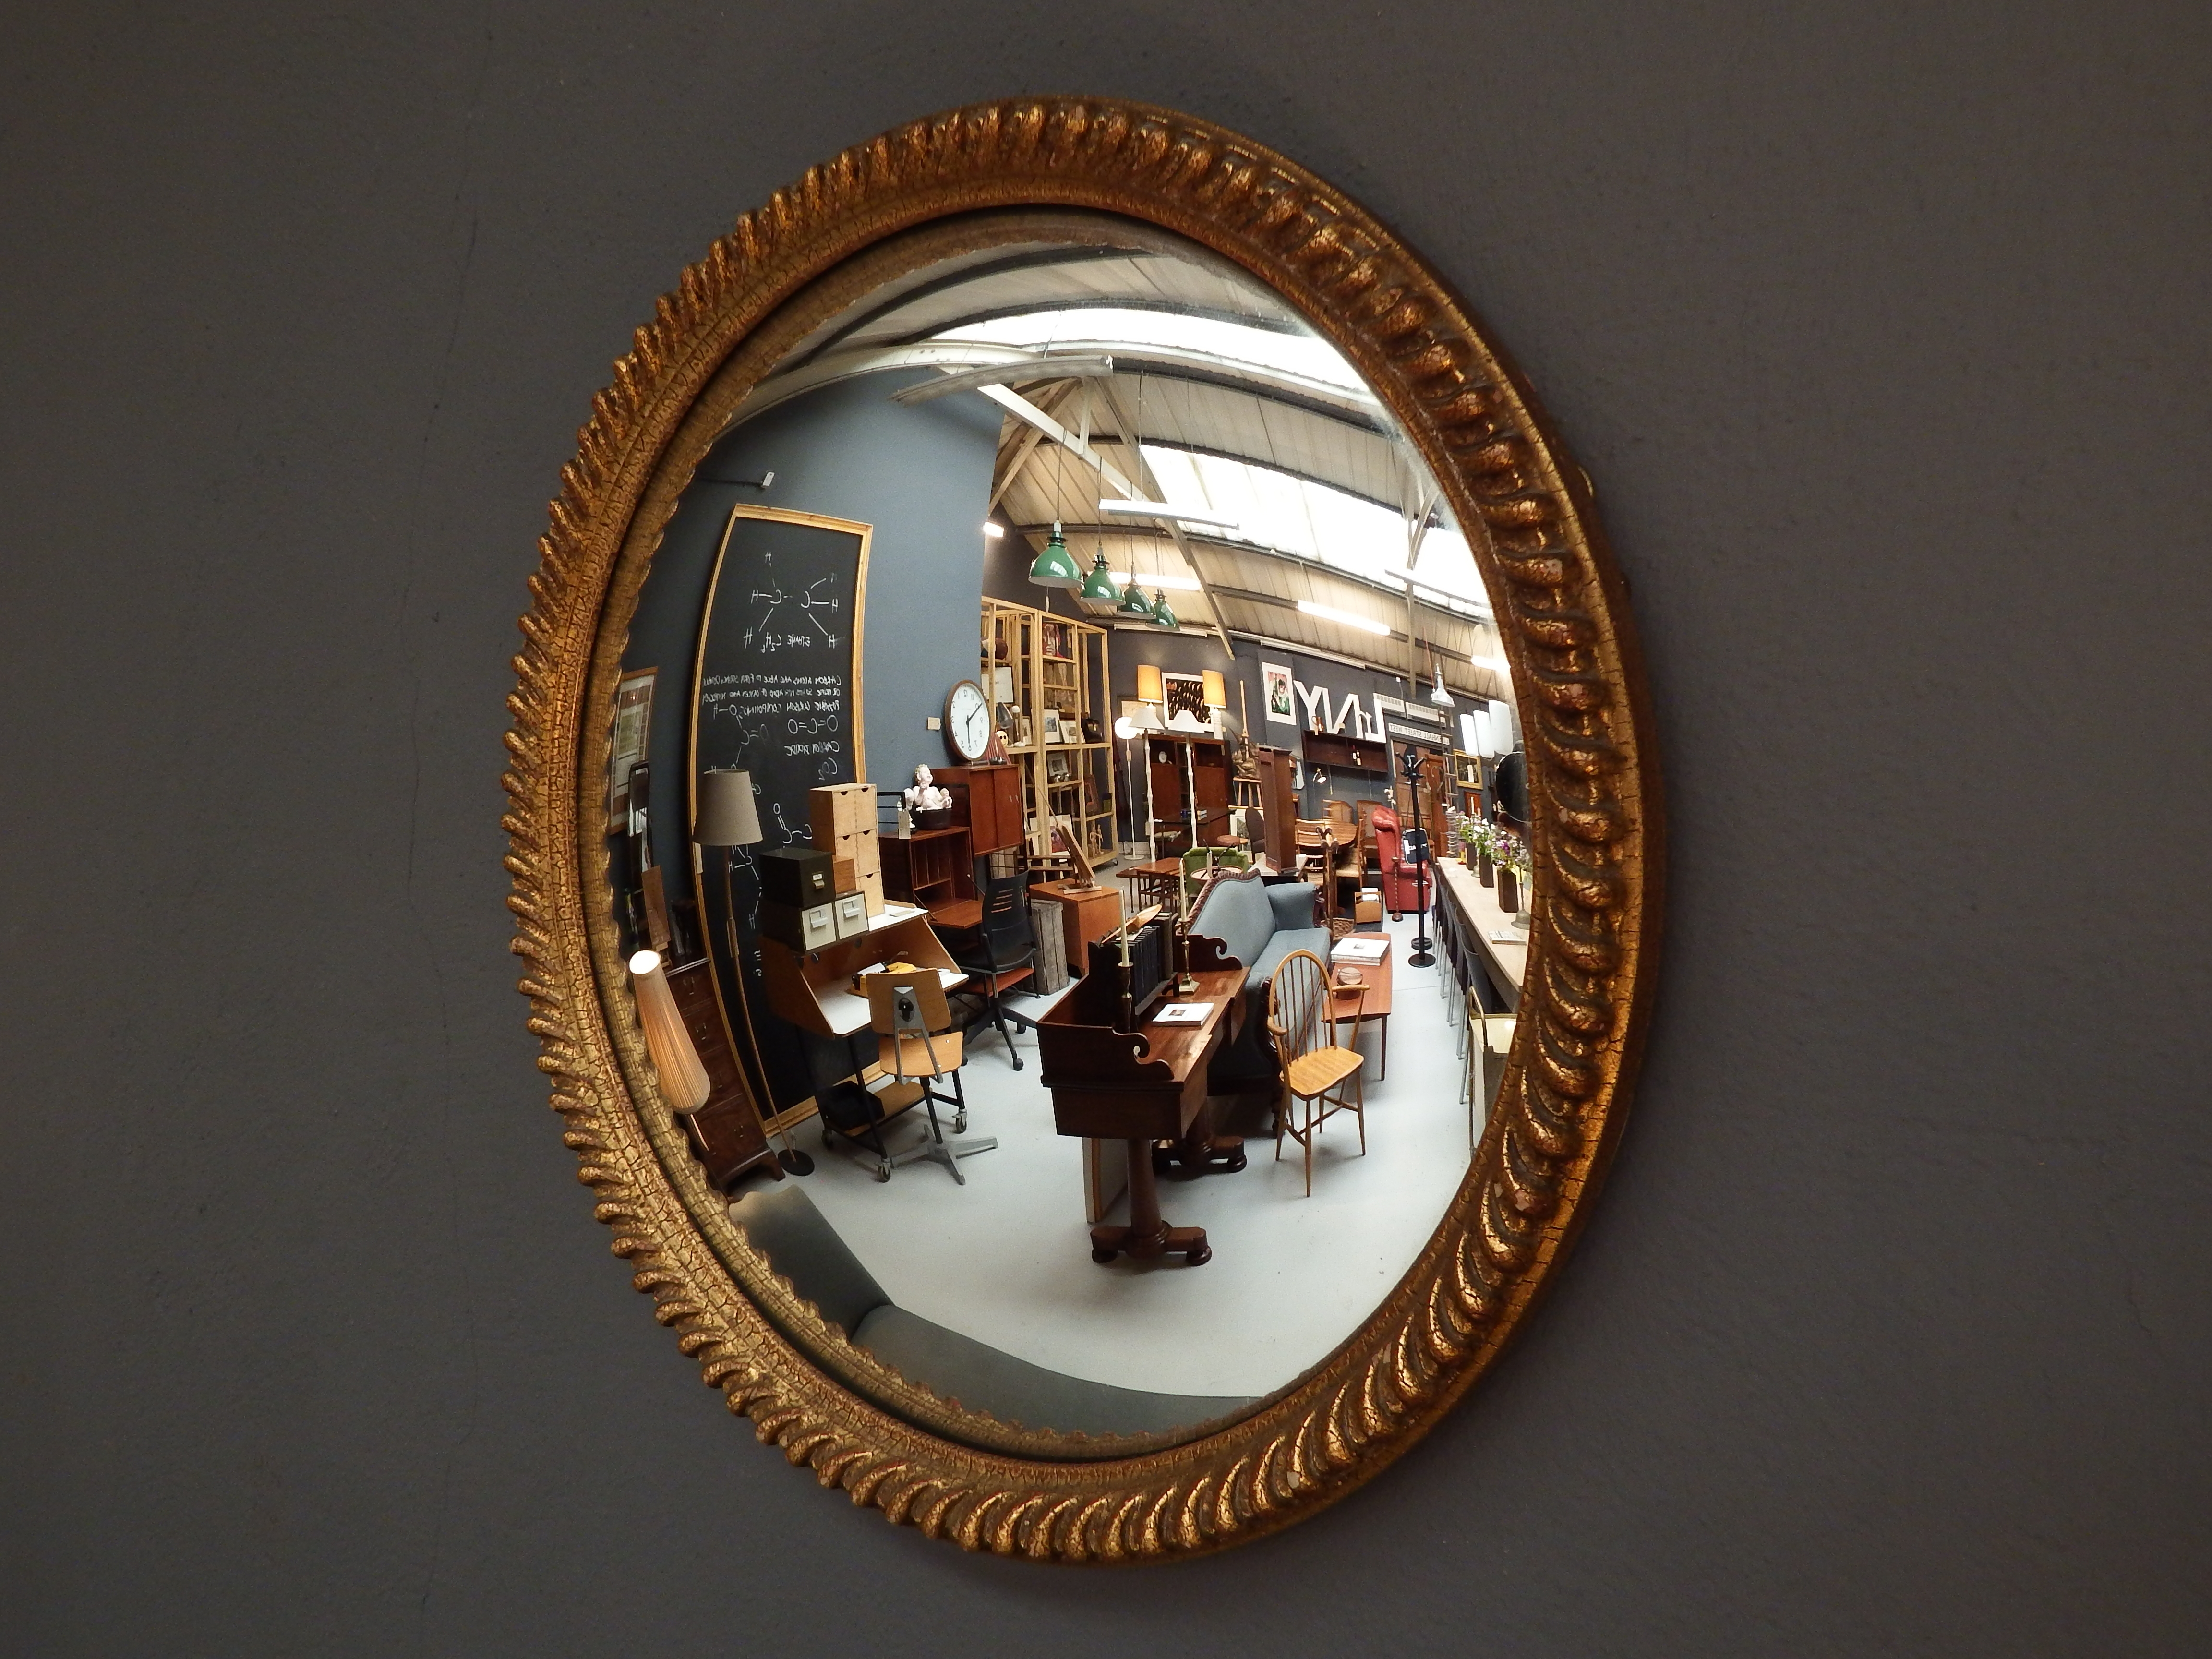 Vintage Convex Mirror Drummond Reid Antiques Intended For Convex Wall Mirrors (View 7 of 15)